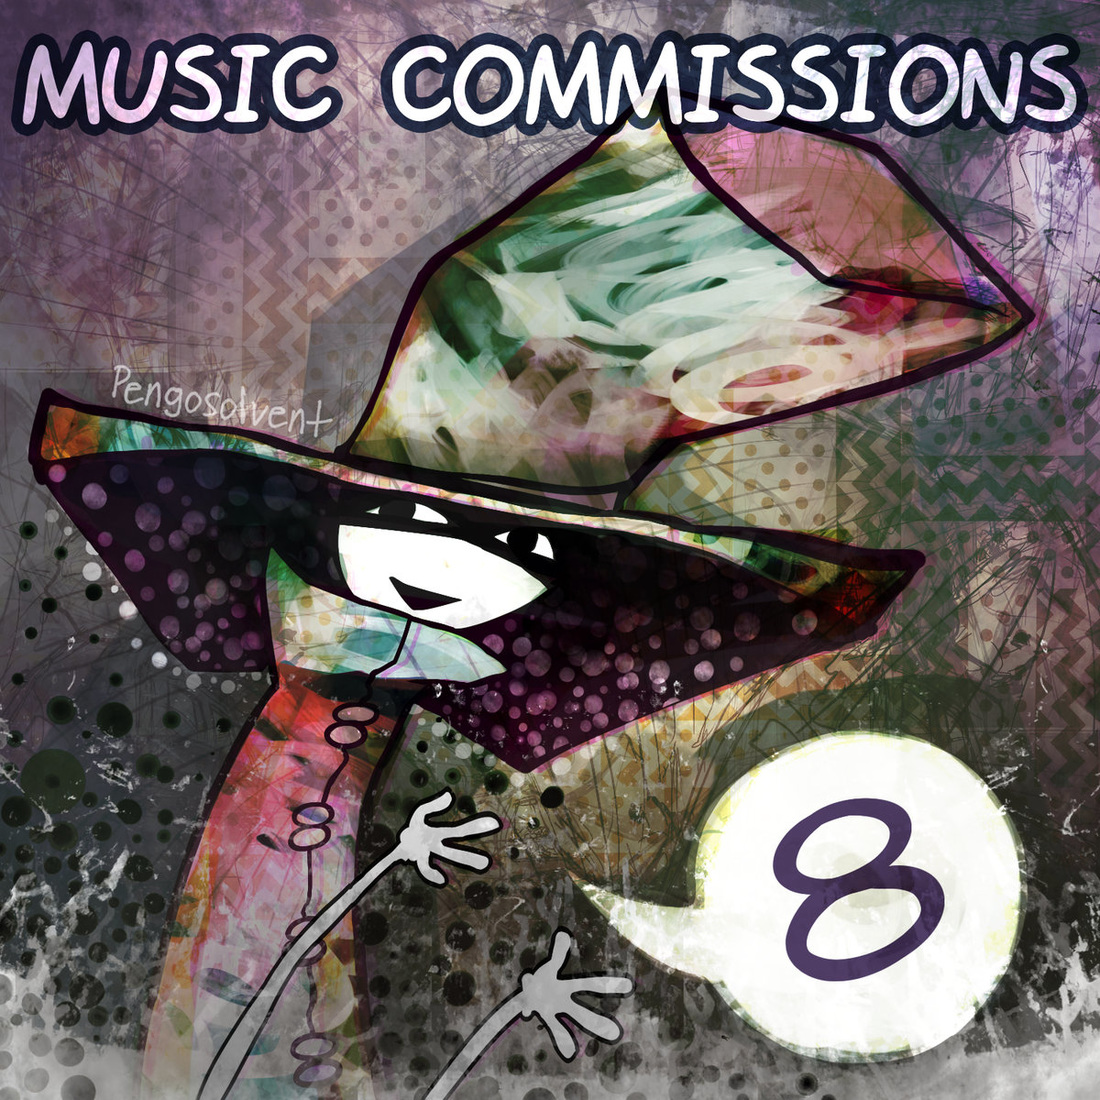 Music Commissions Album 8